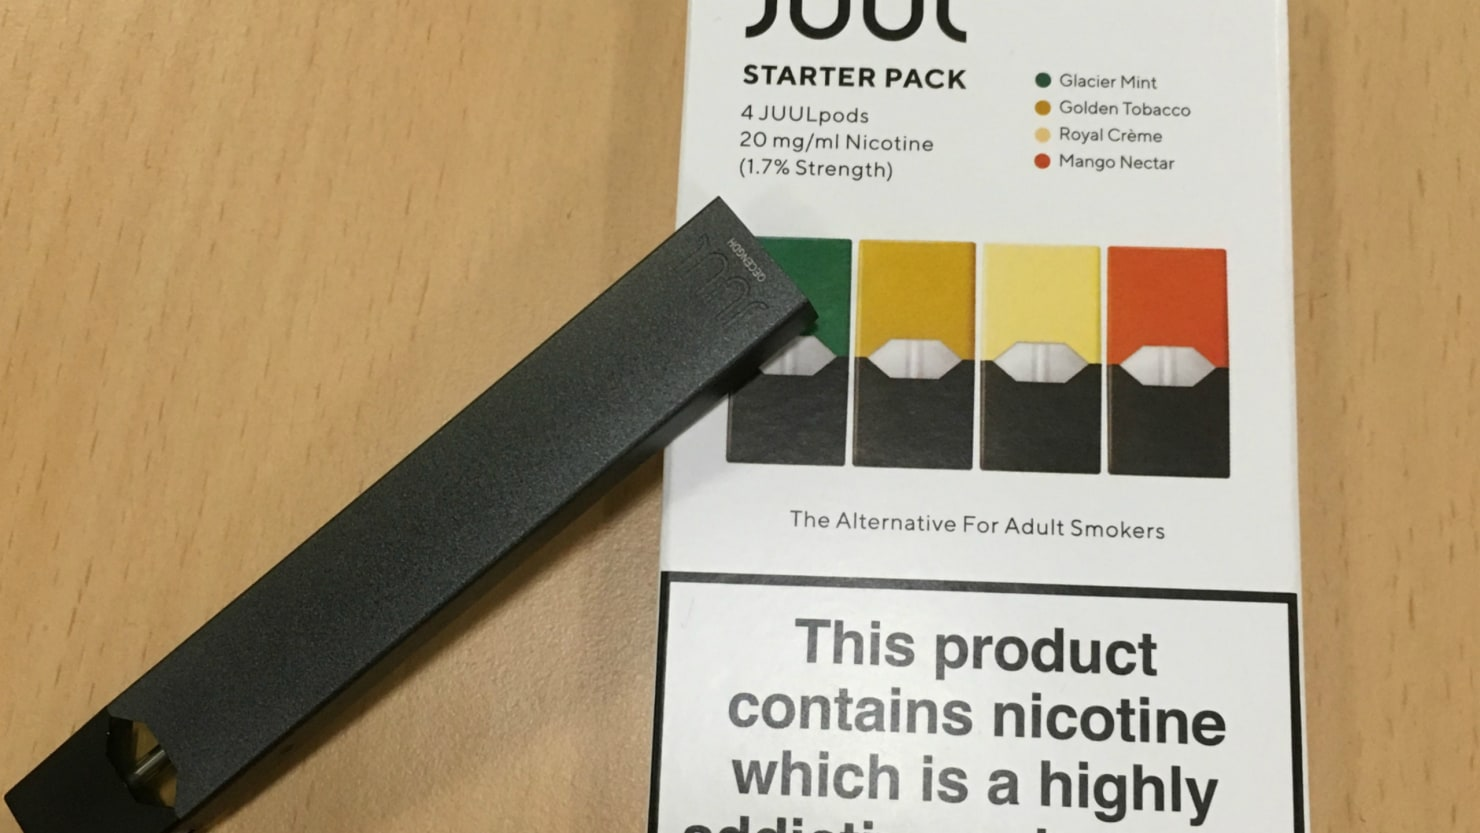 FDA Threatens to Ban Juul, Other Flavored E-Cigarettes